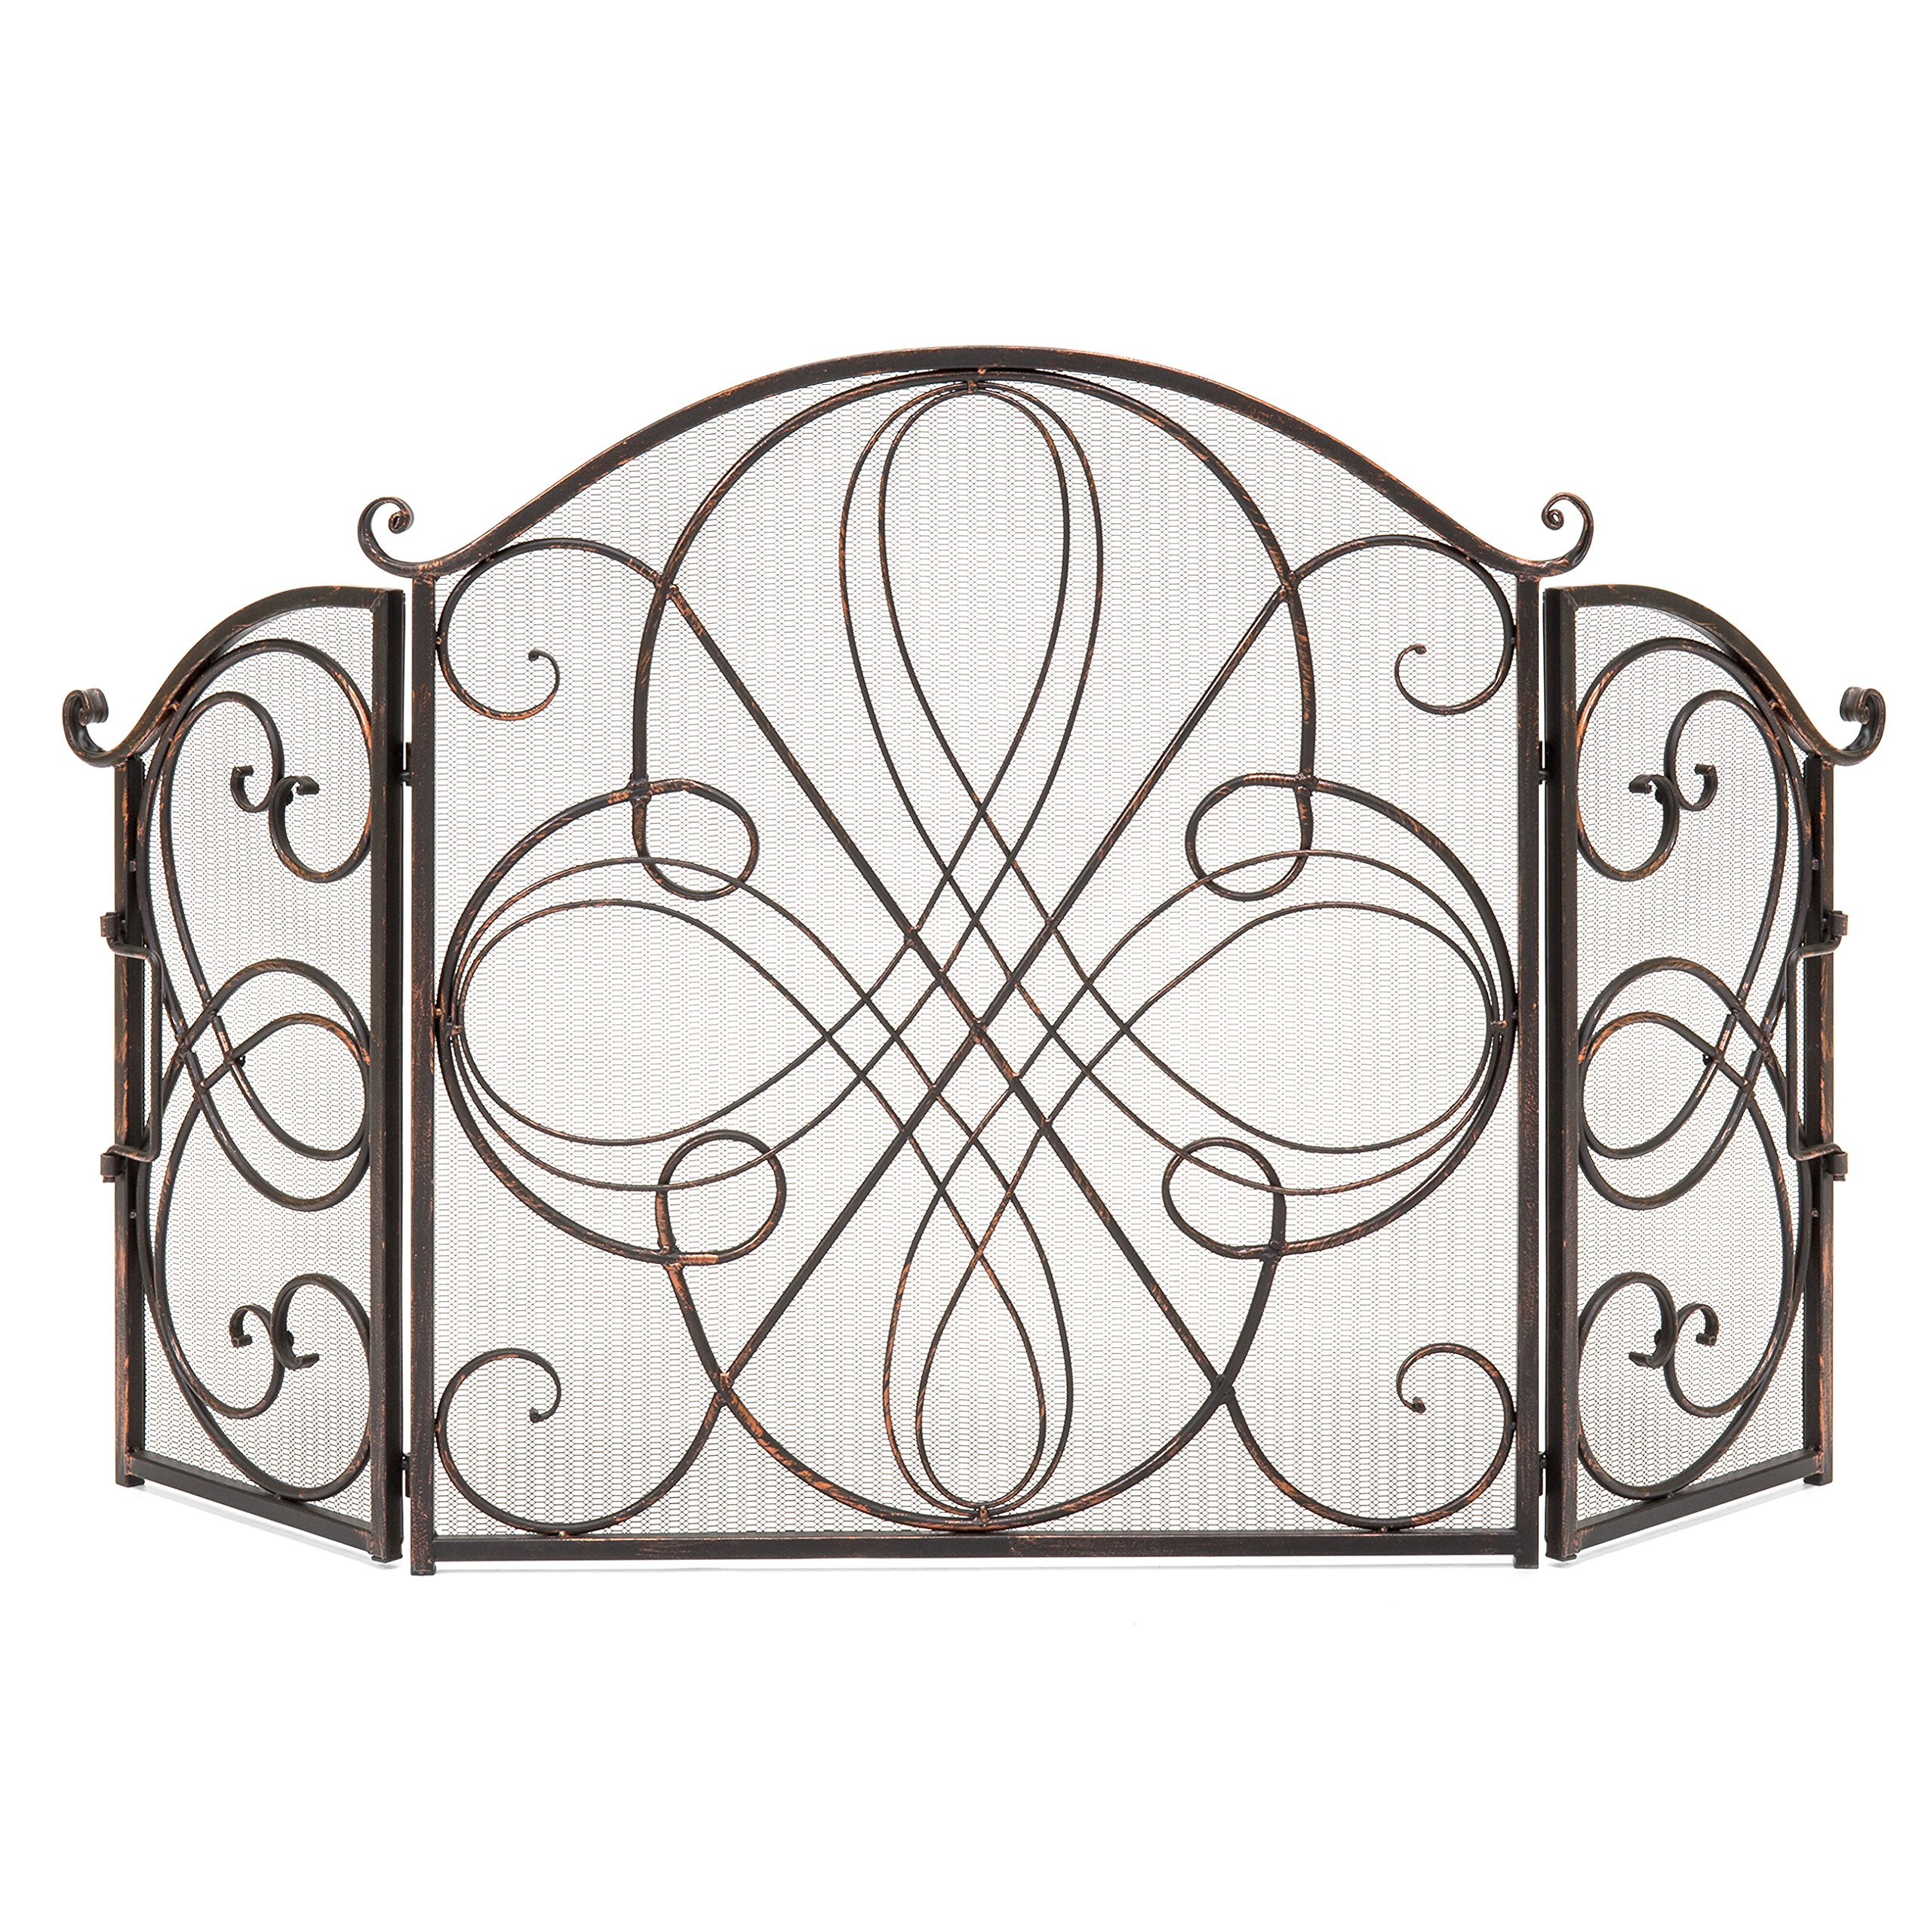 Best Choice Products 3-Panel Wrought Iron Fireplace Safety Screen Decorative Scroll Spark Guard Cover by Best Choice Products